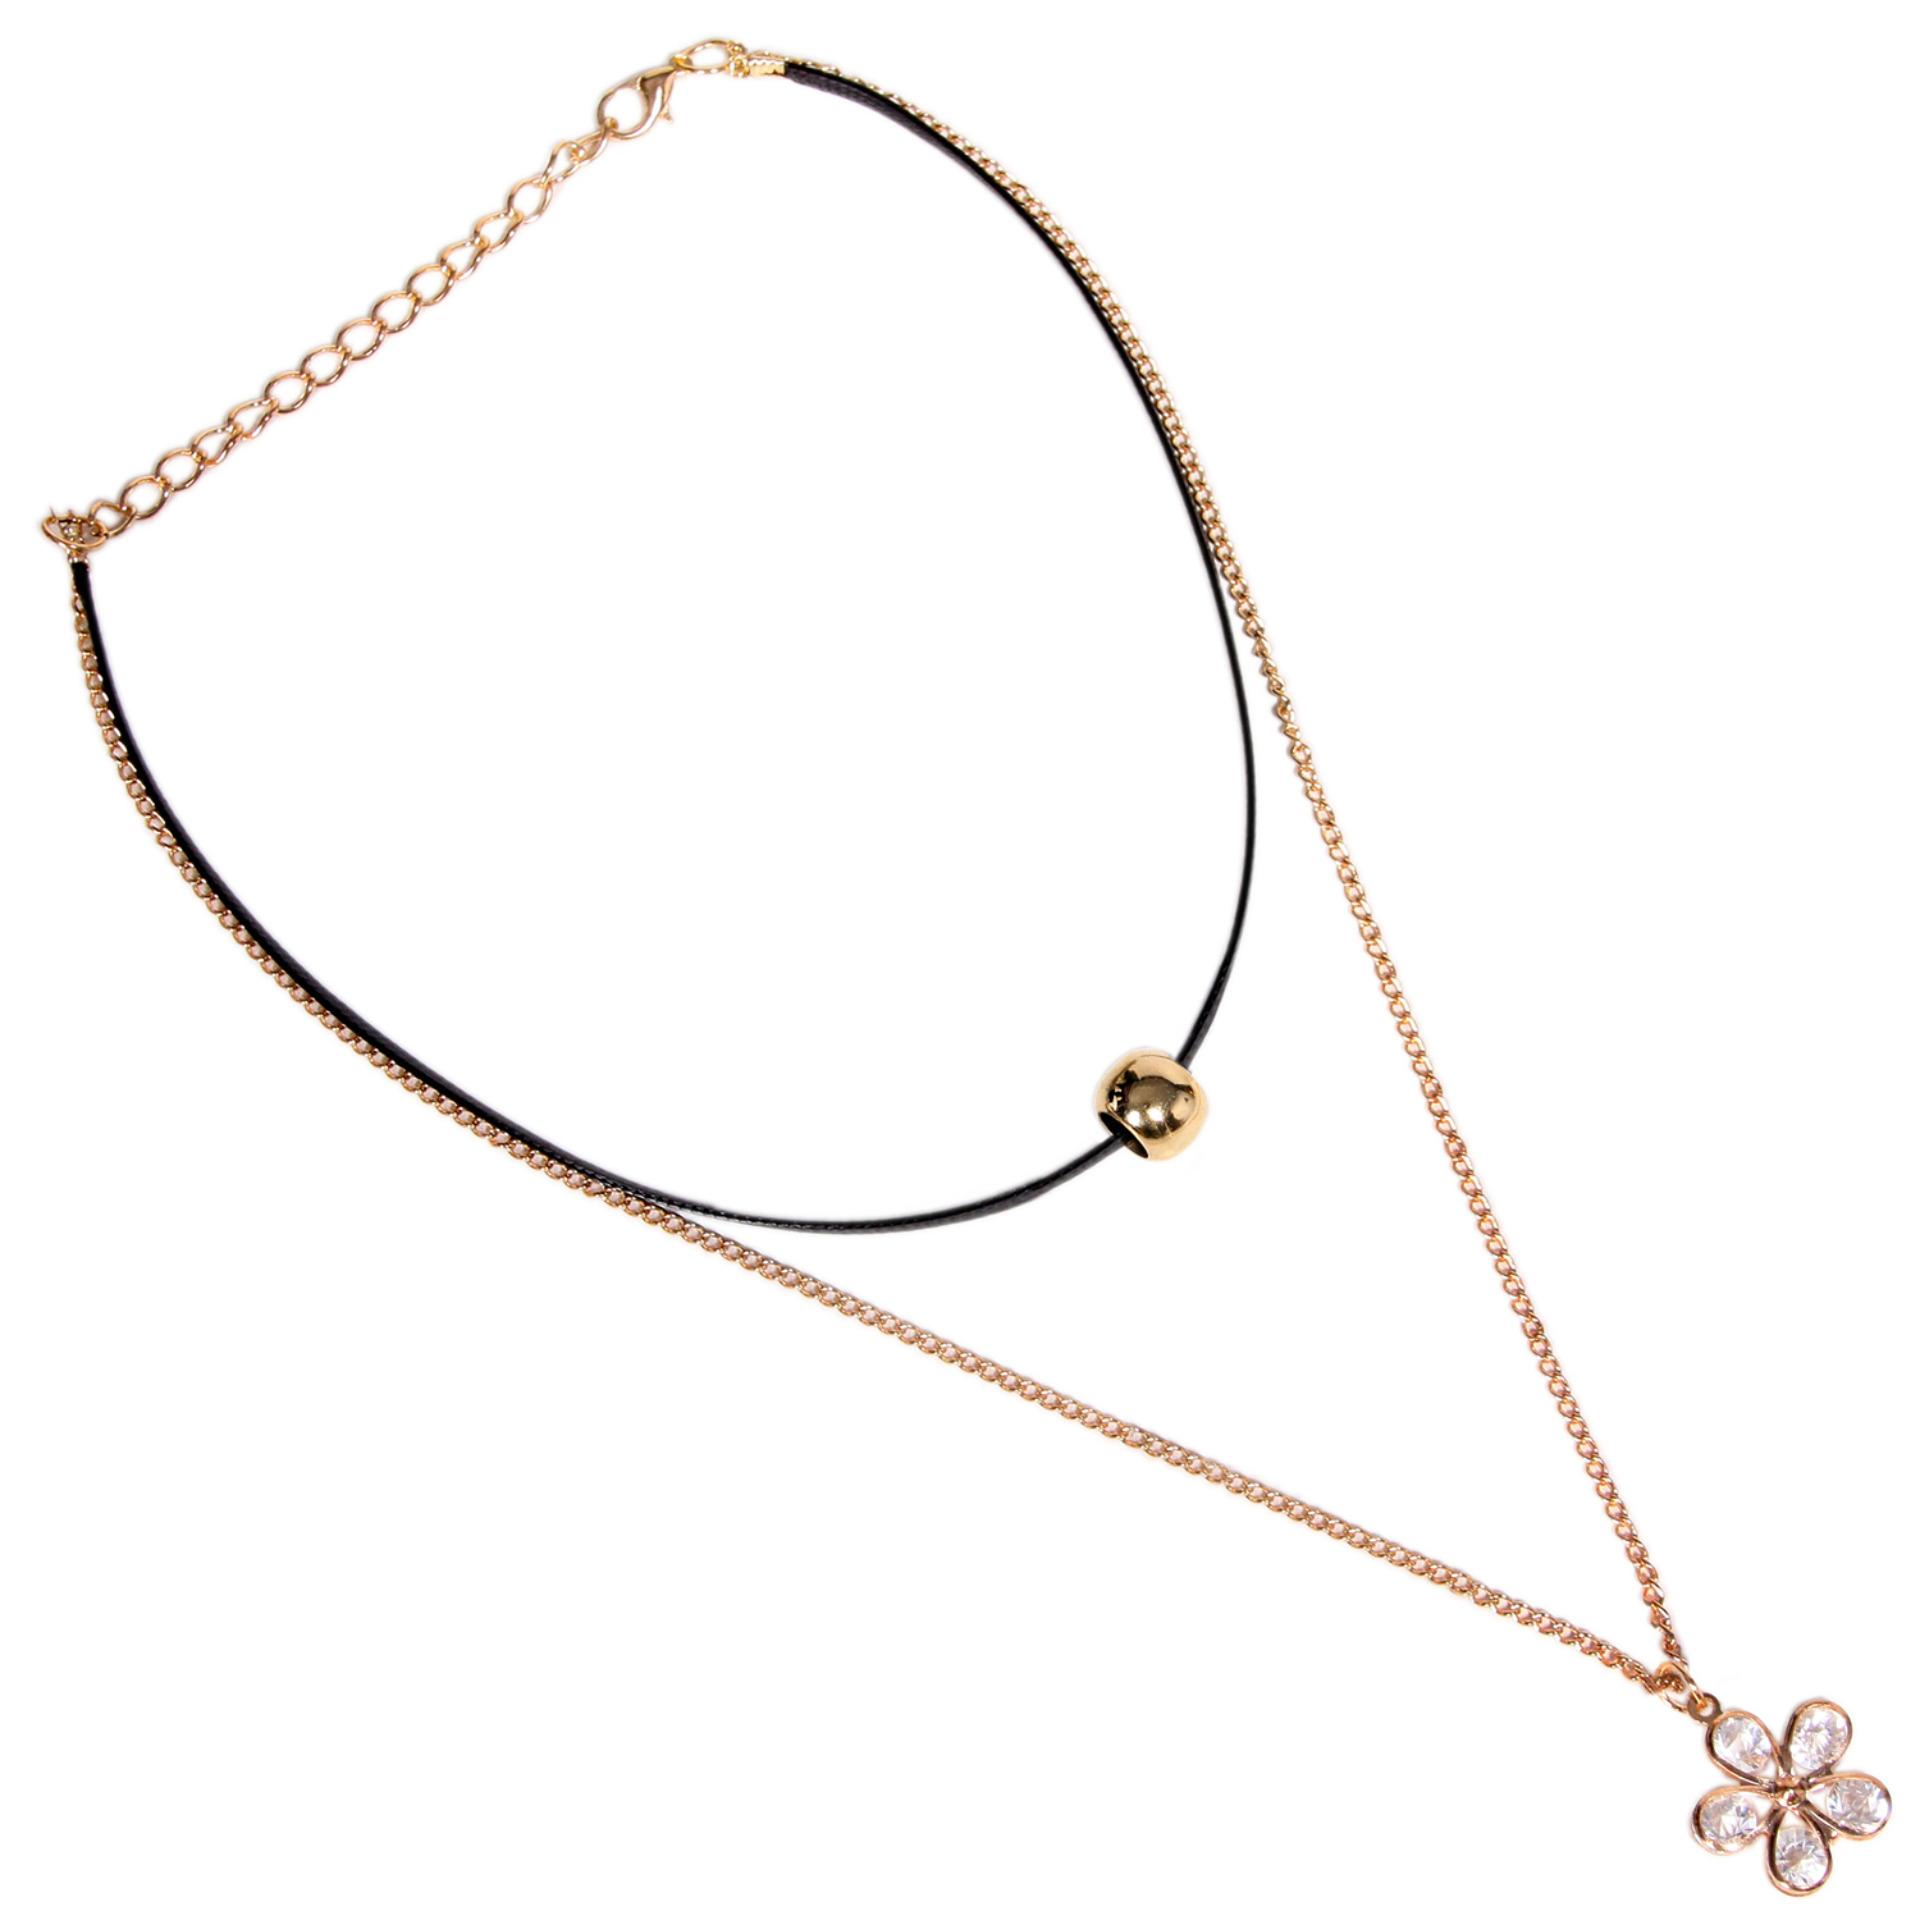 Timmy Queen Pom Pom Beauty Necklace 0800 B5a Kalung Panjang Wanita Source Timmy .